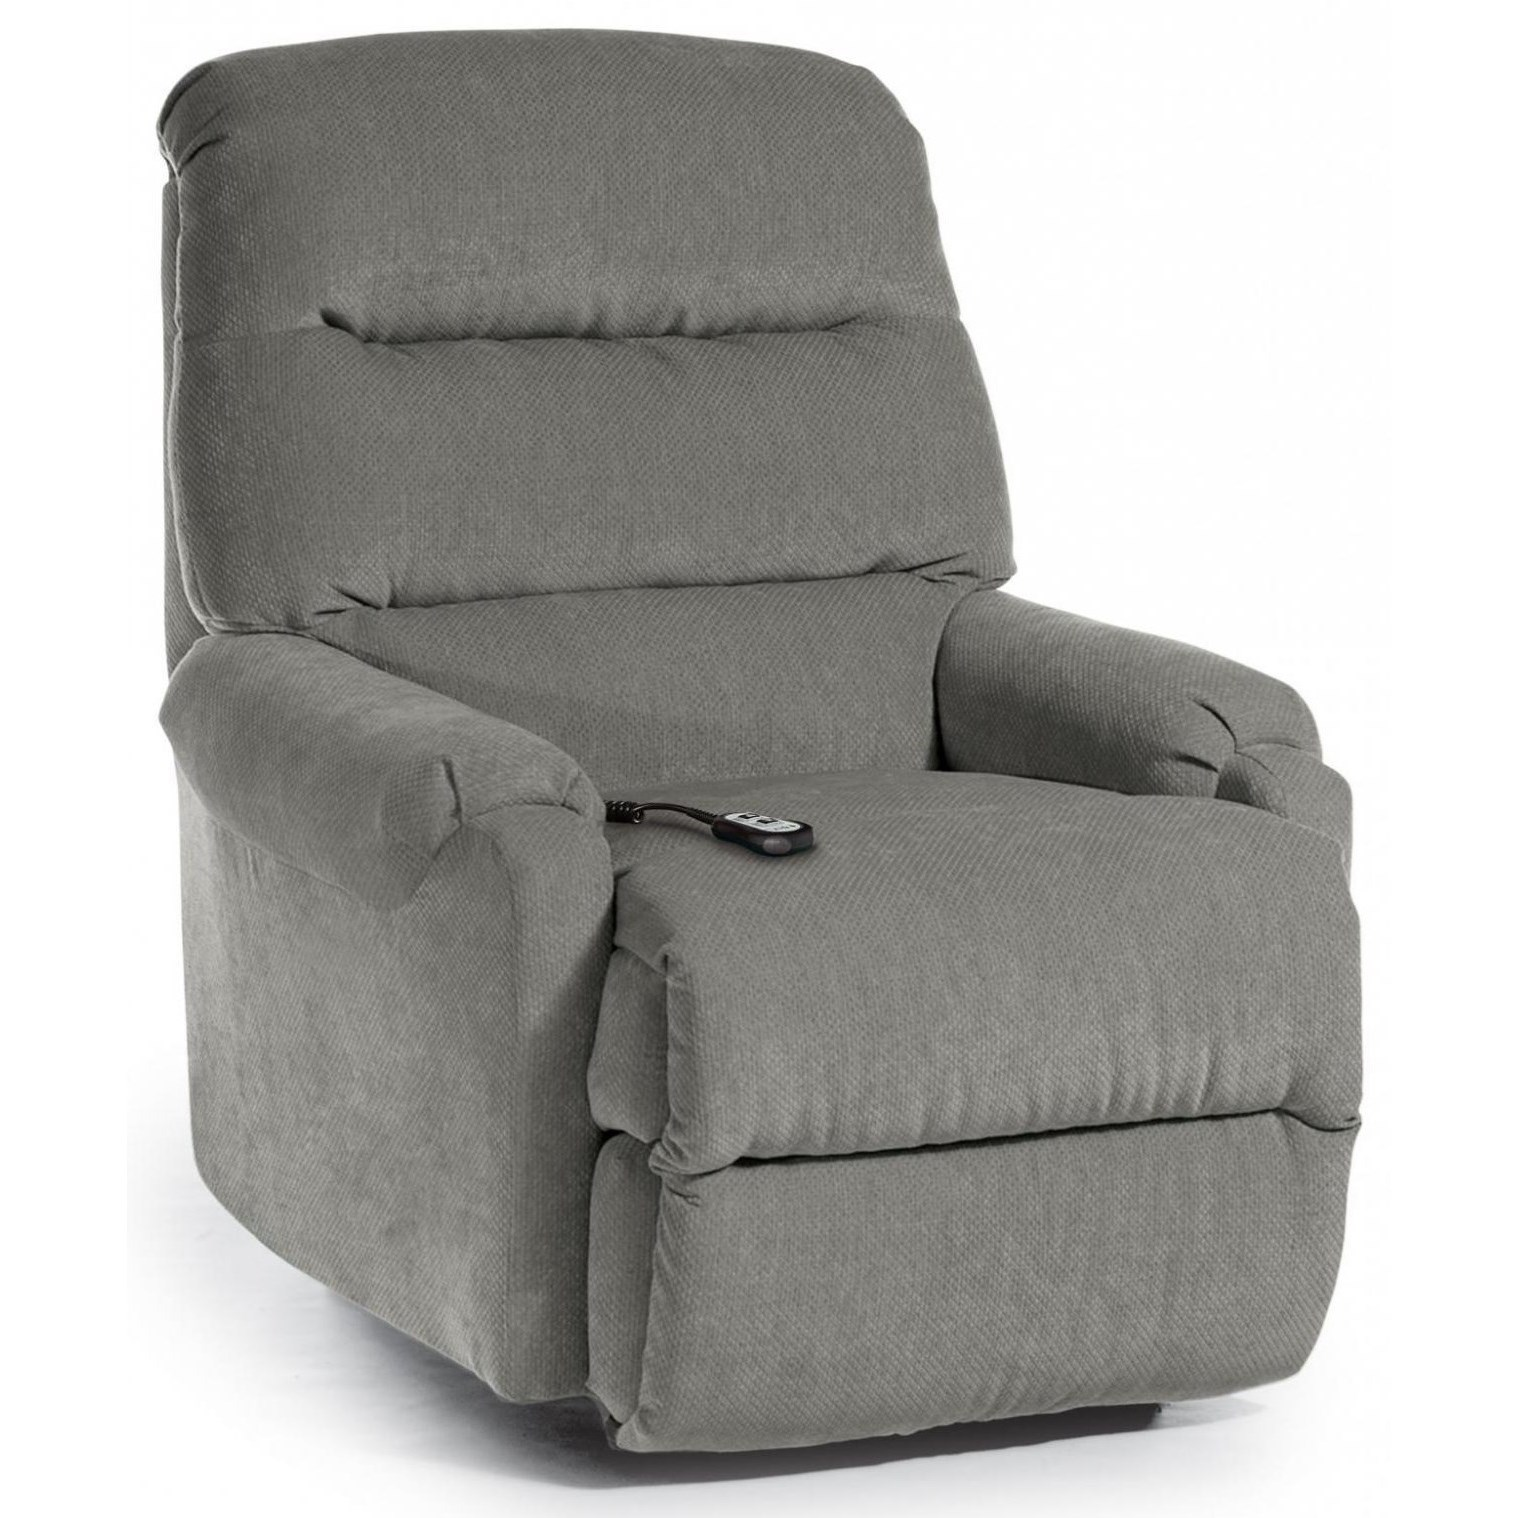 Petite Recliners Sedgefield Pwr Lift Recliner w/ Pwr Headrest by Best Home Furnishings at Lapeer Furniture & Mattress Center